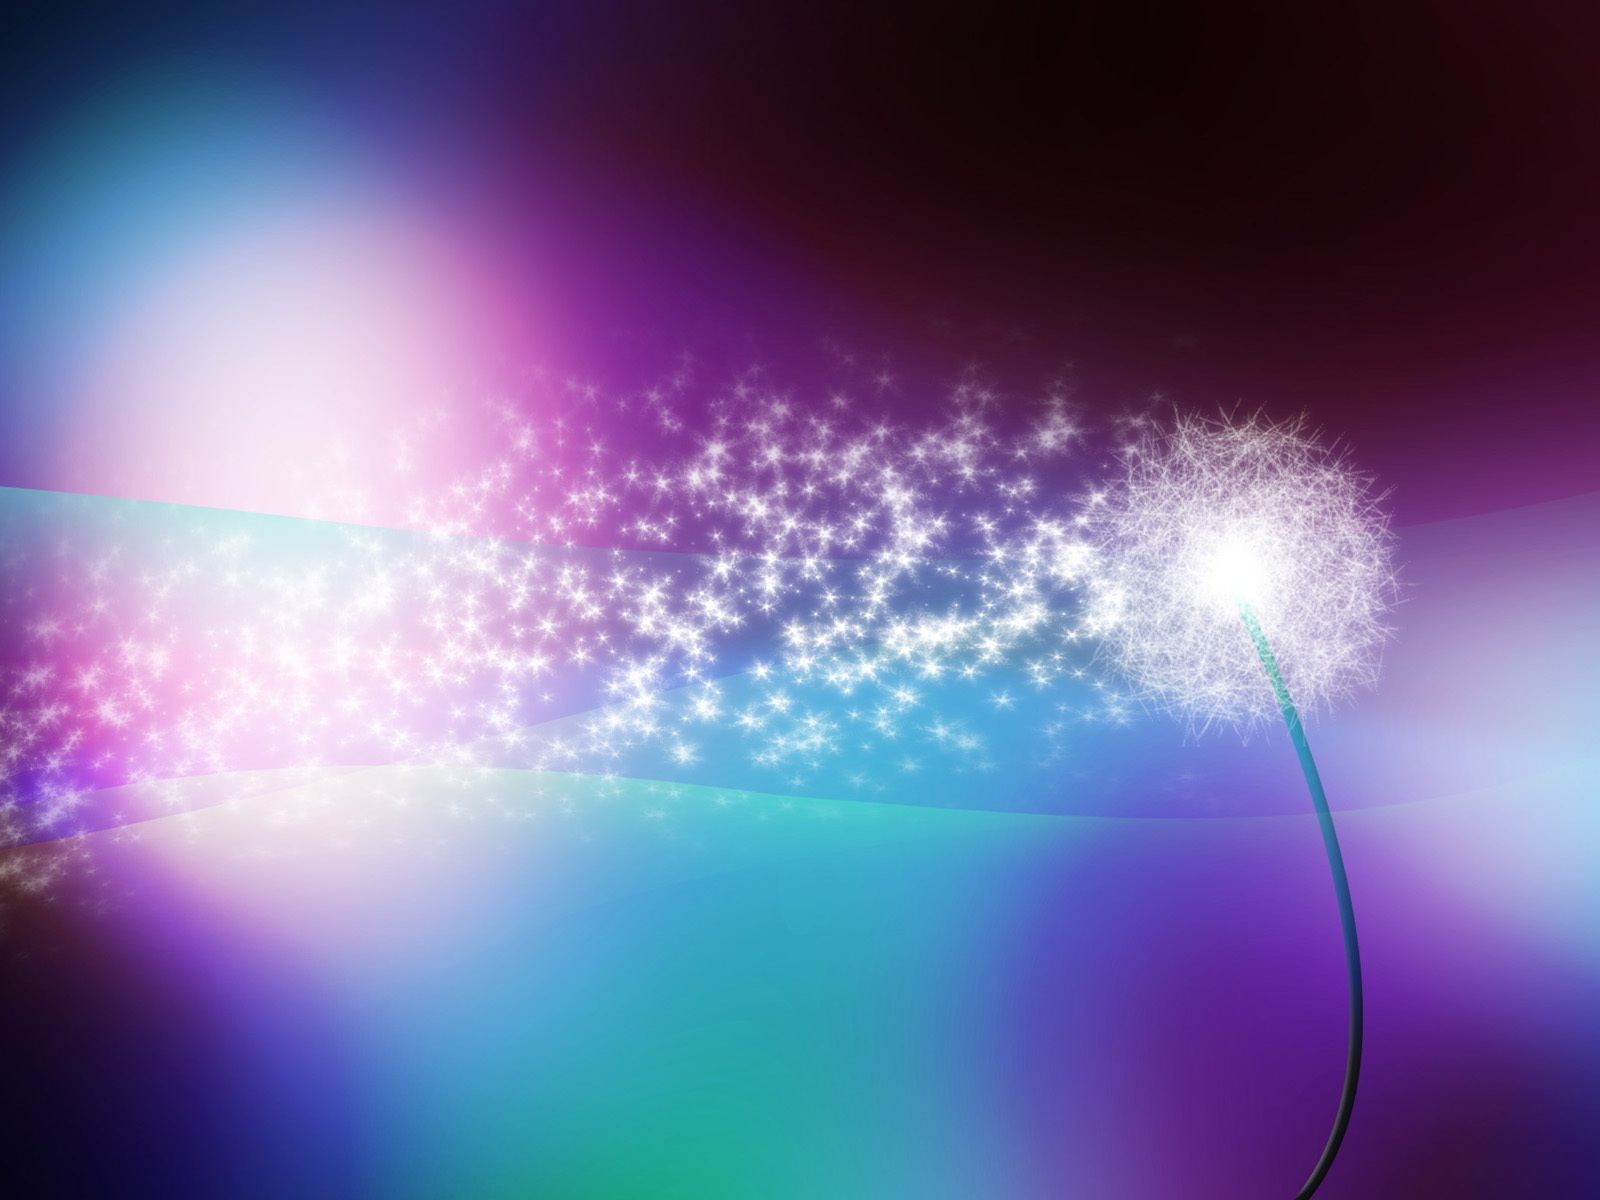 colorful lights wallpaper 34026